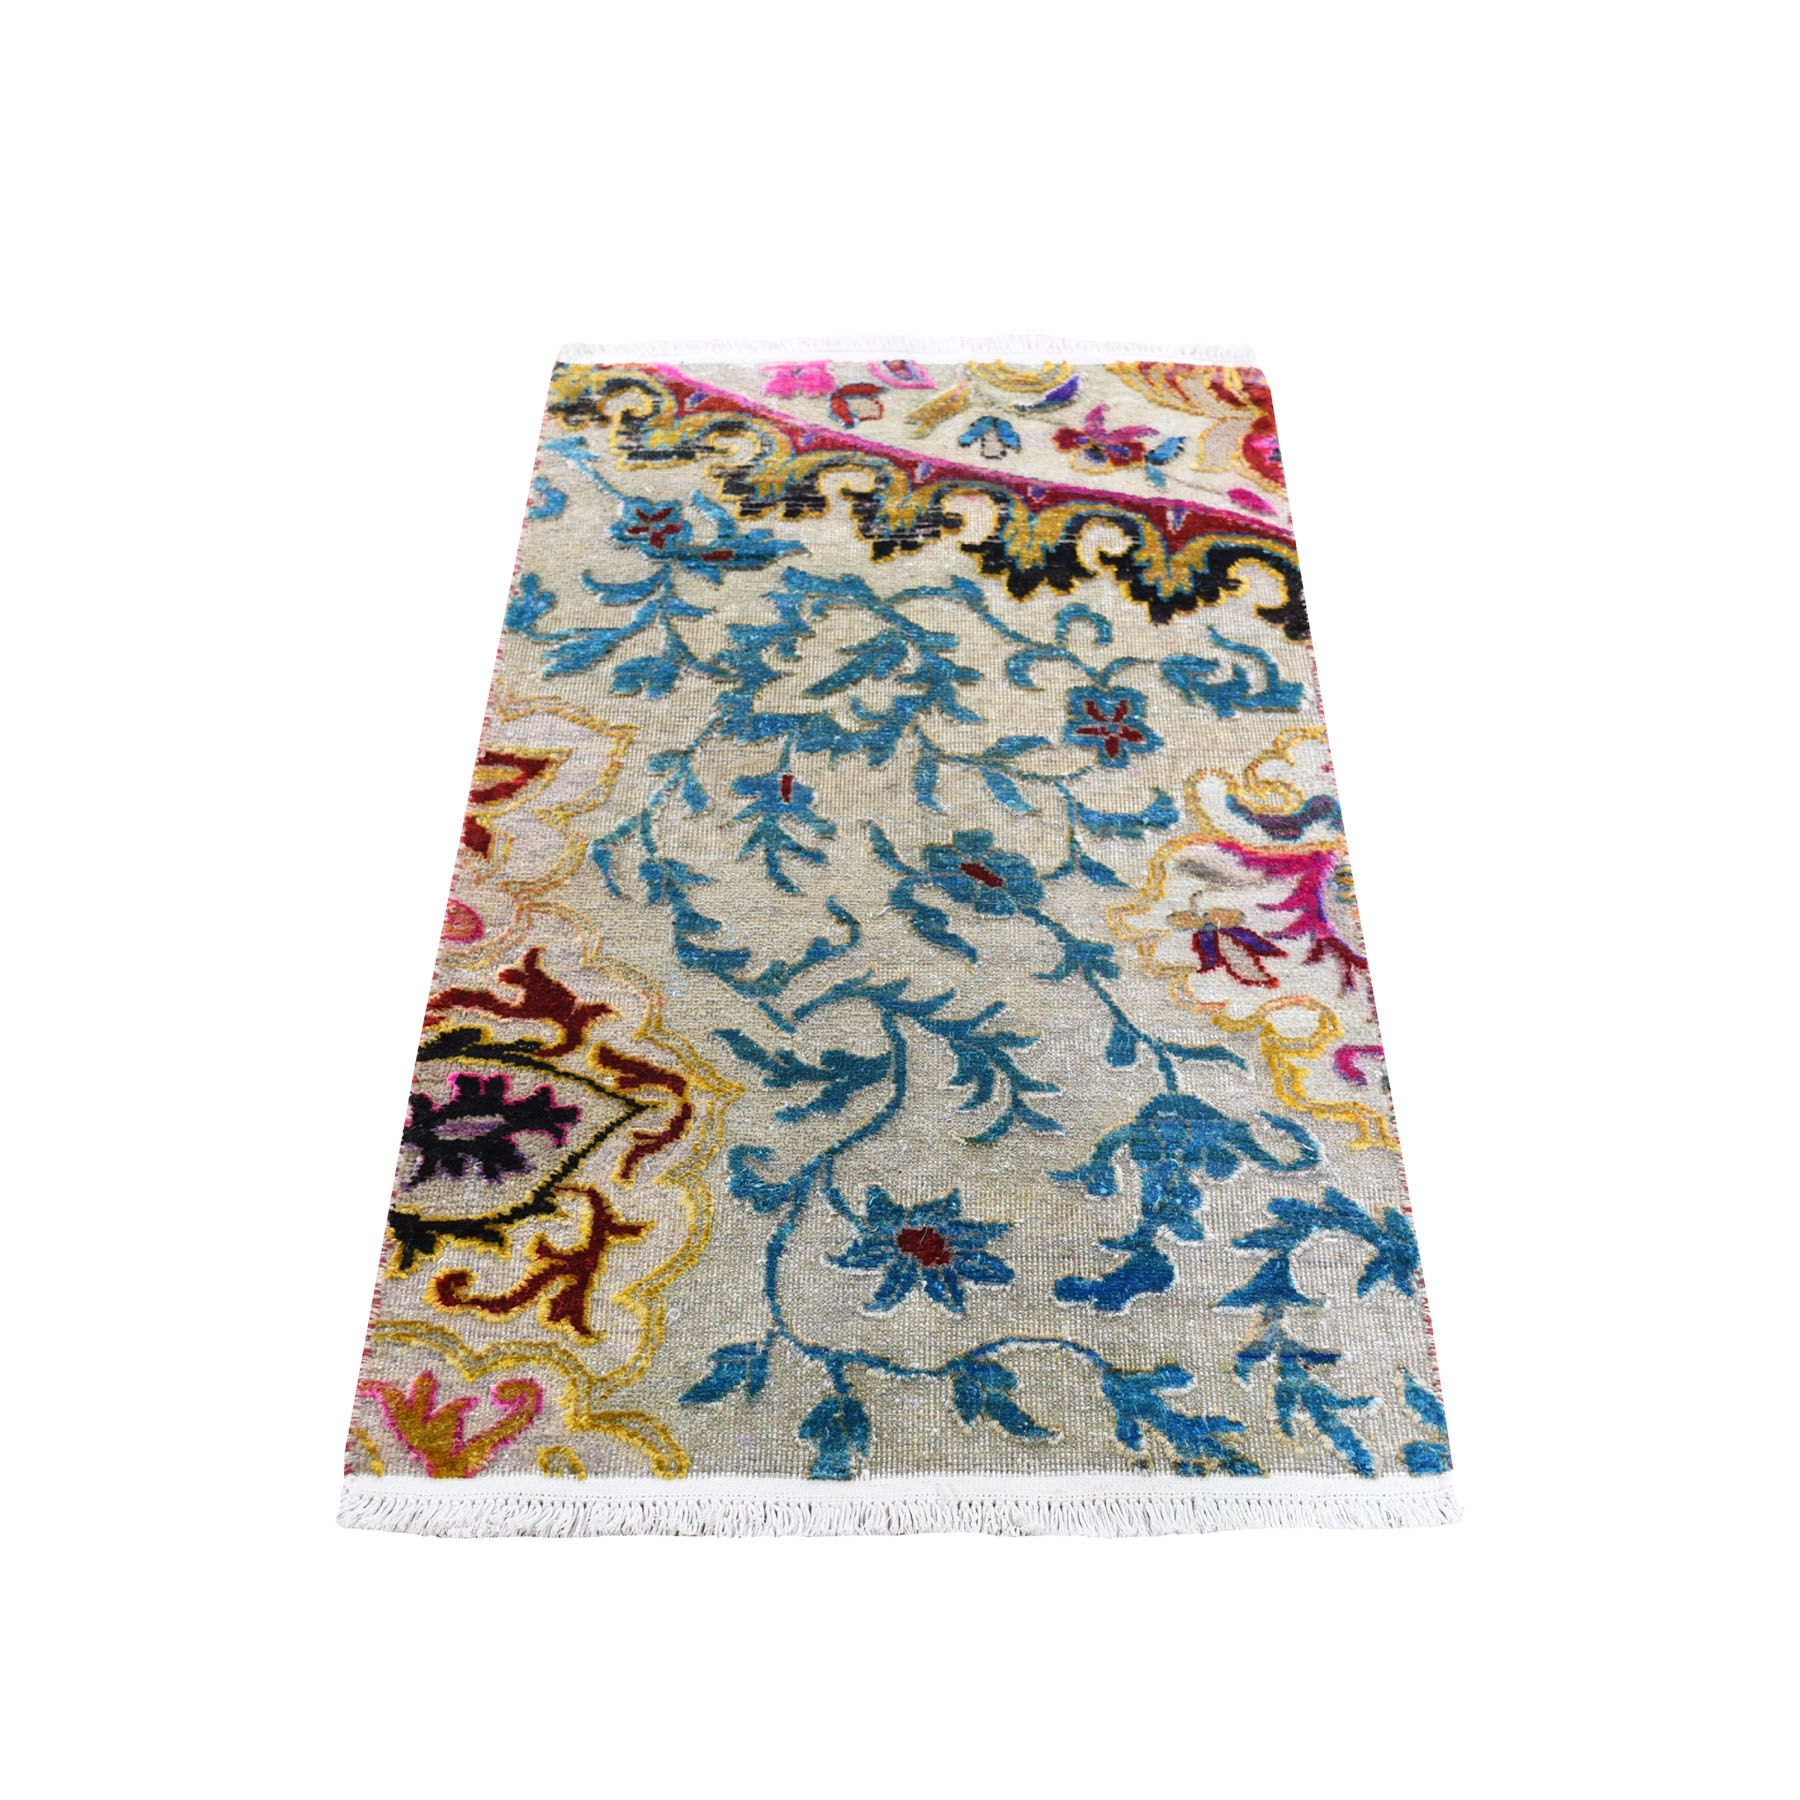 Wool and Real Silk Collection Hand Knotted Multicolored Rug No: 193922